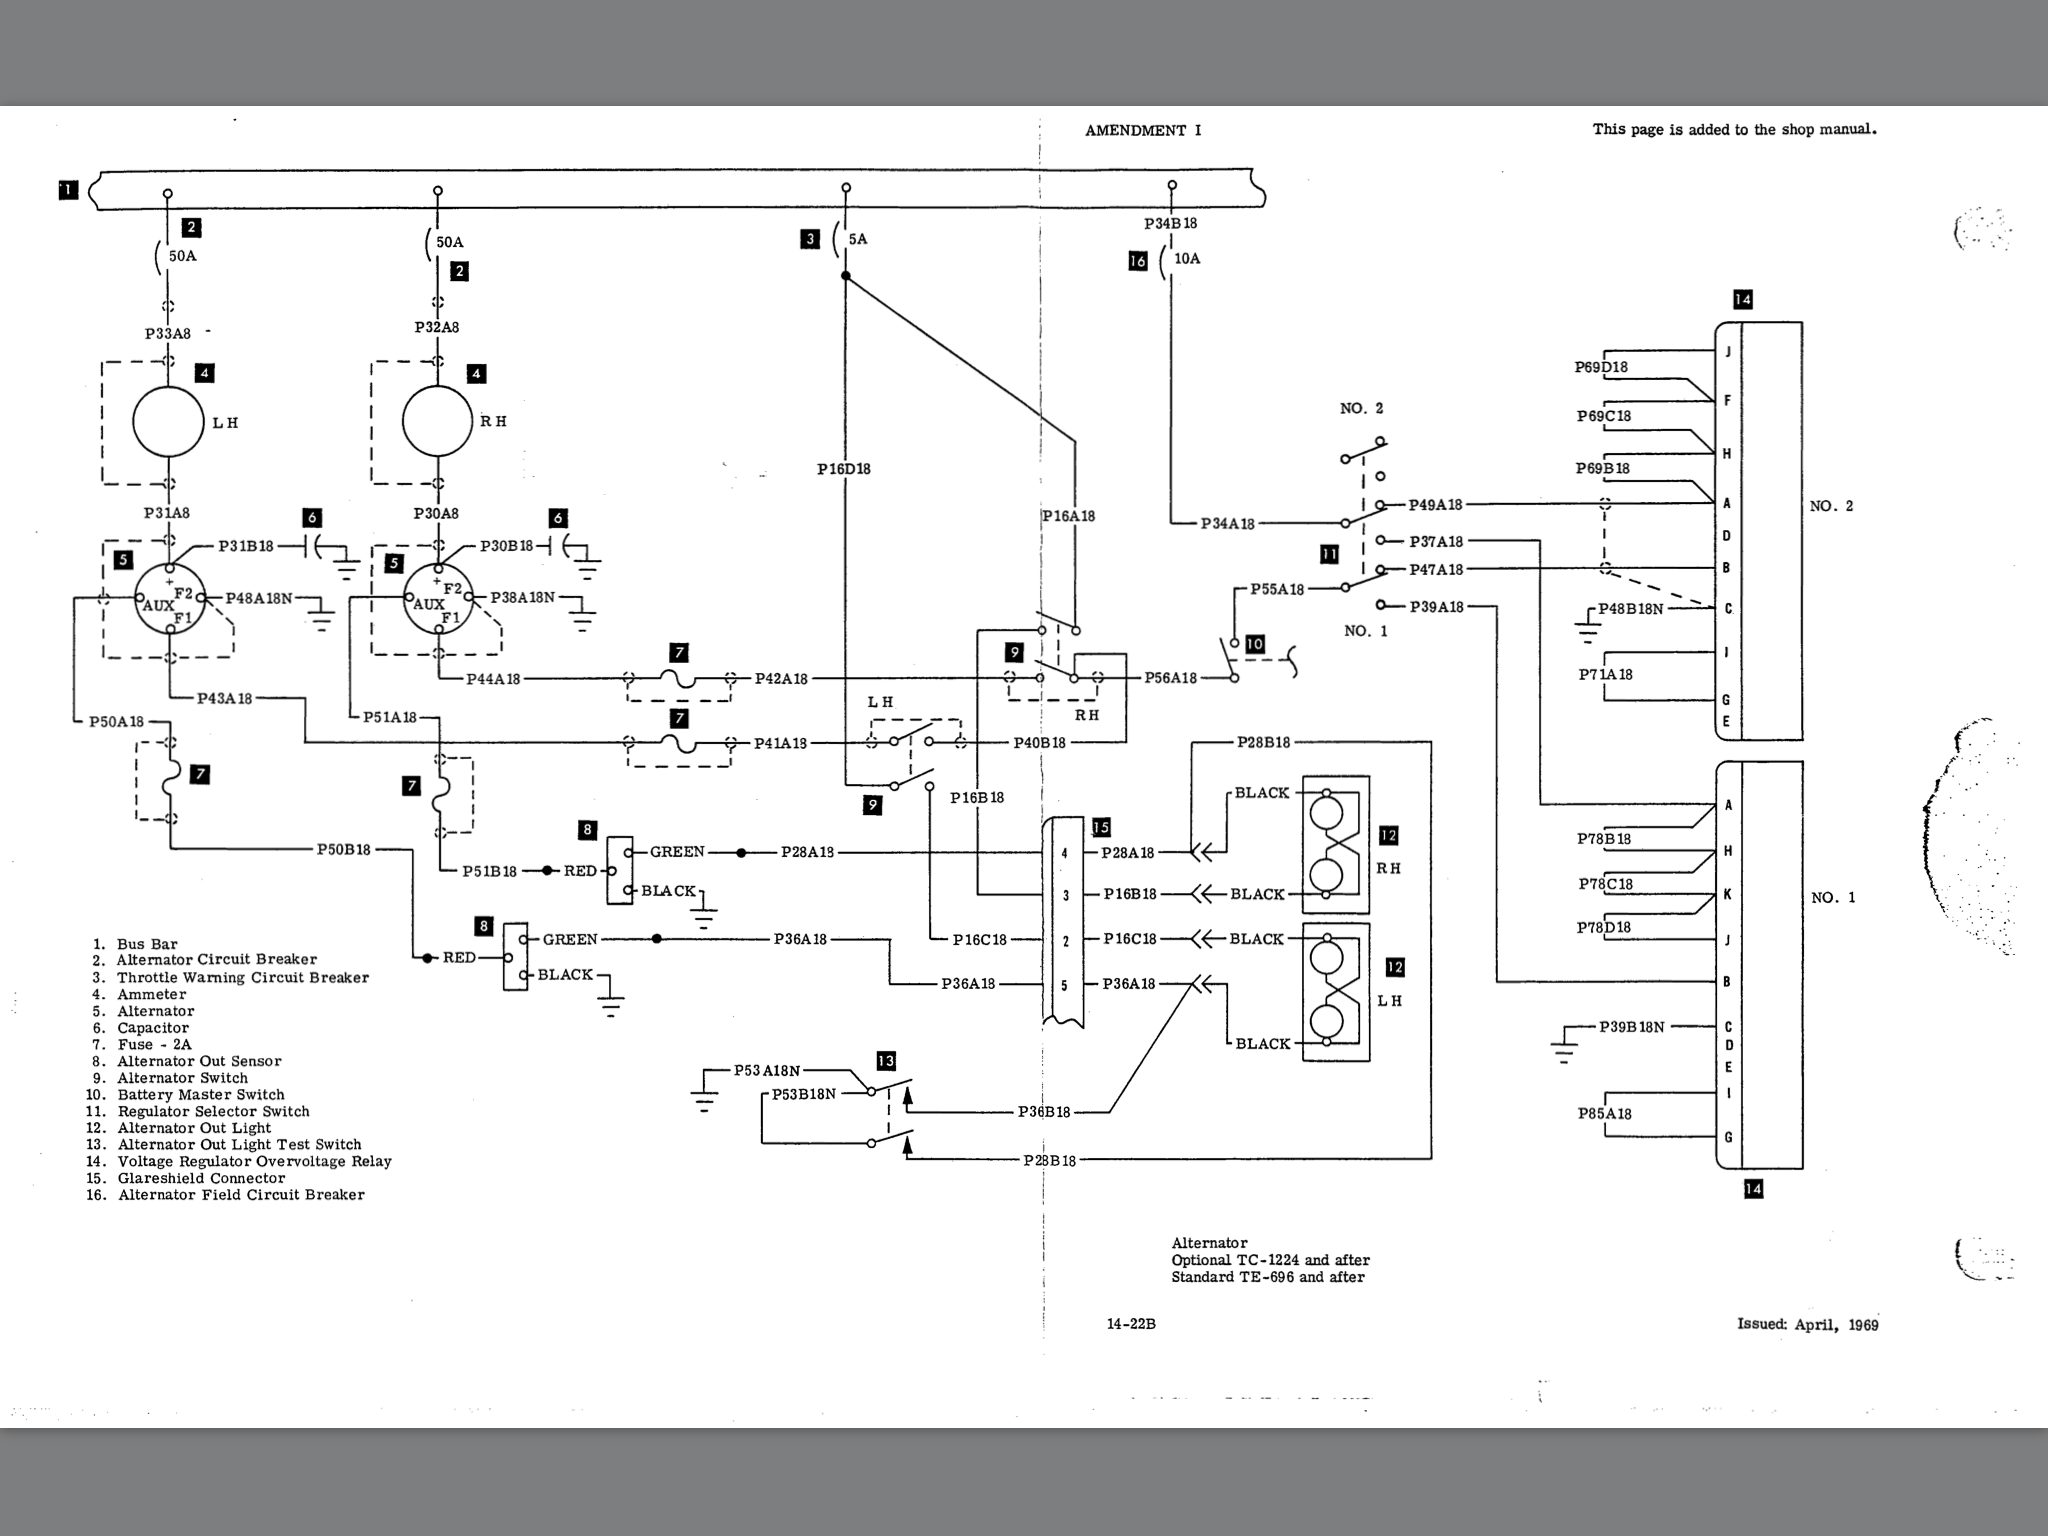 Delco Industrial Alternator Wiring Diagram Delco Voltage